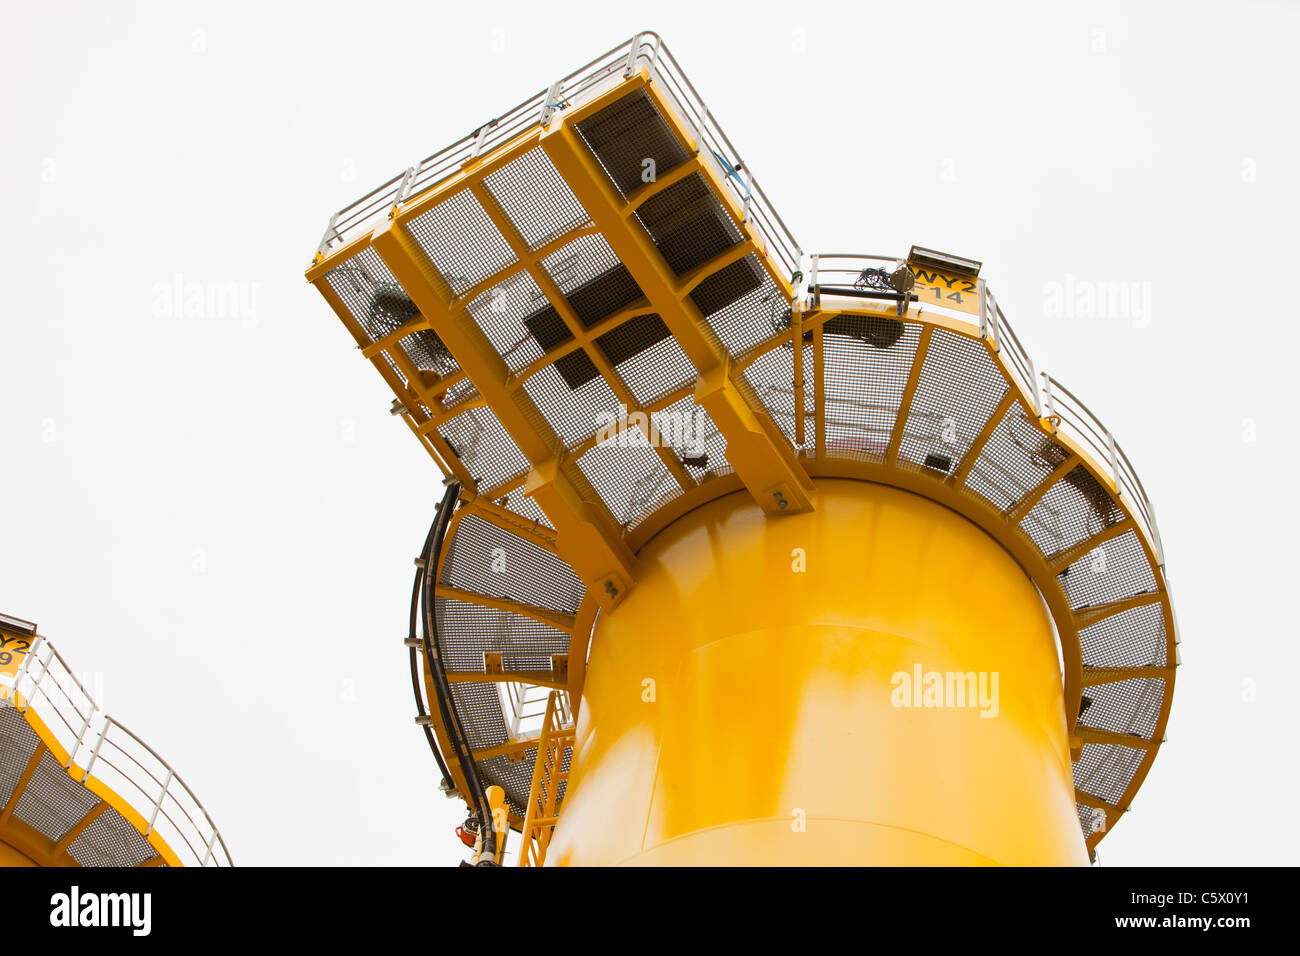 Transition pieces for the Walney offshore wind farm on the docks at Barrow in furness, UK. - Stock Image